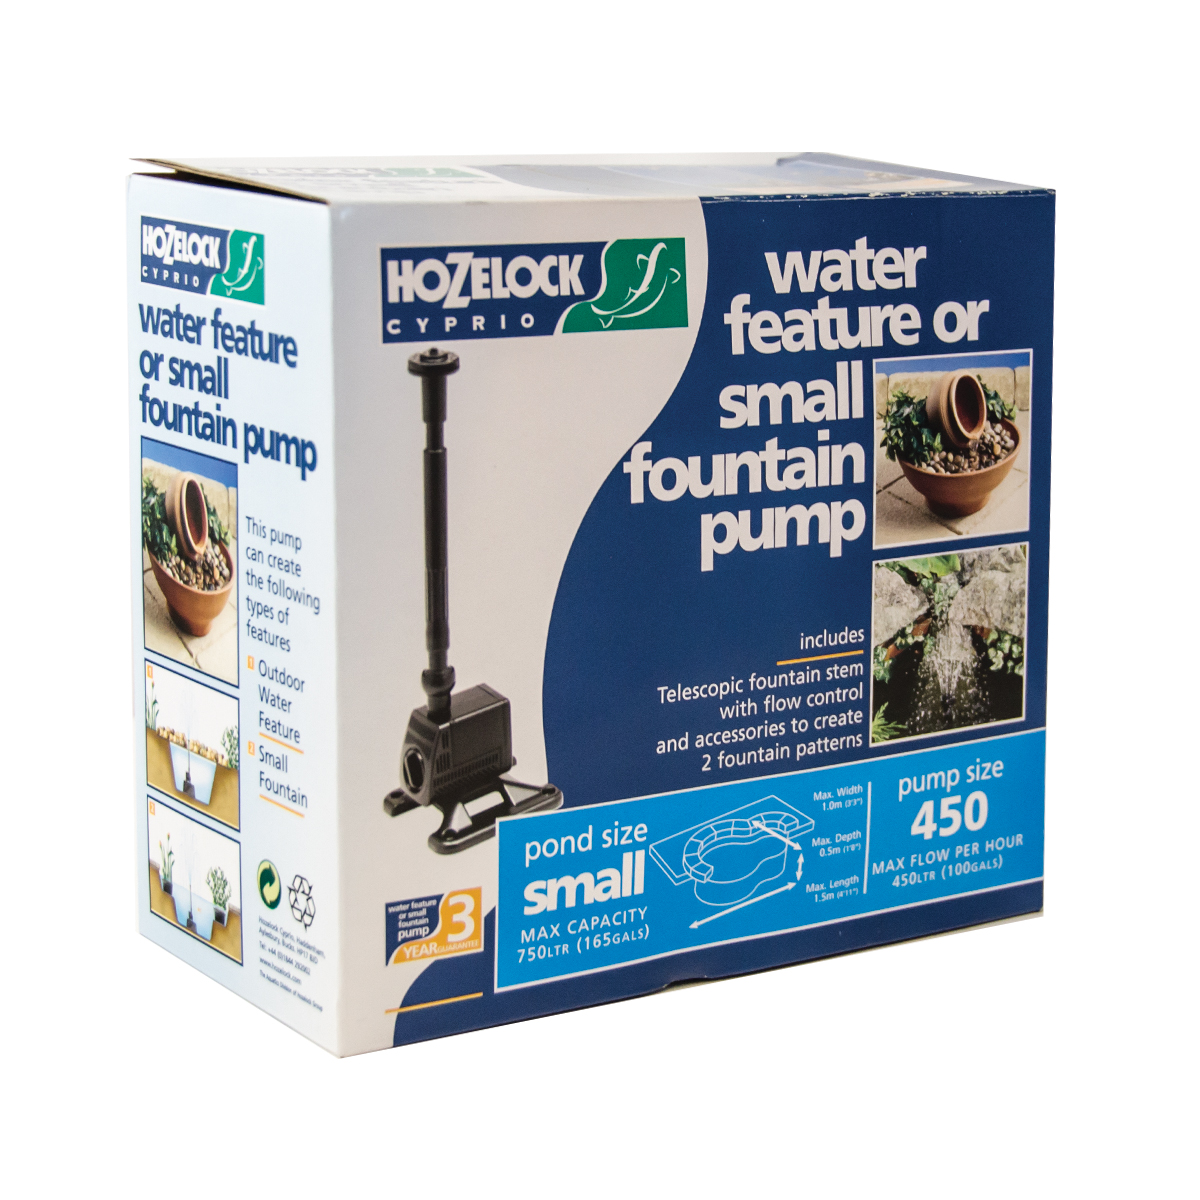 Hozelock 450lph pond submersible water feature pump for Water feature pump